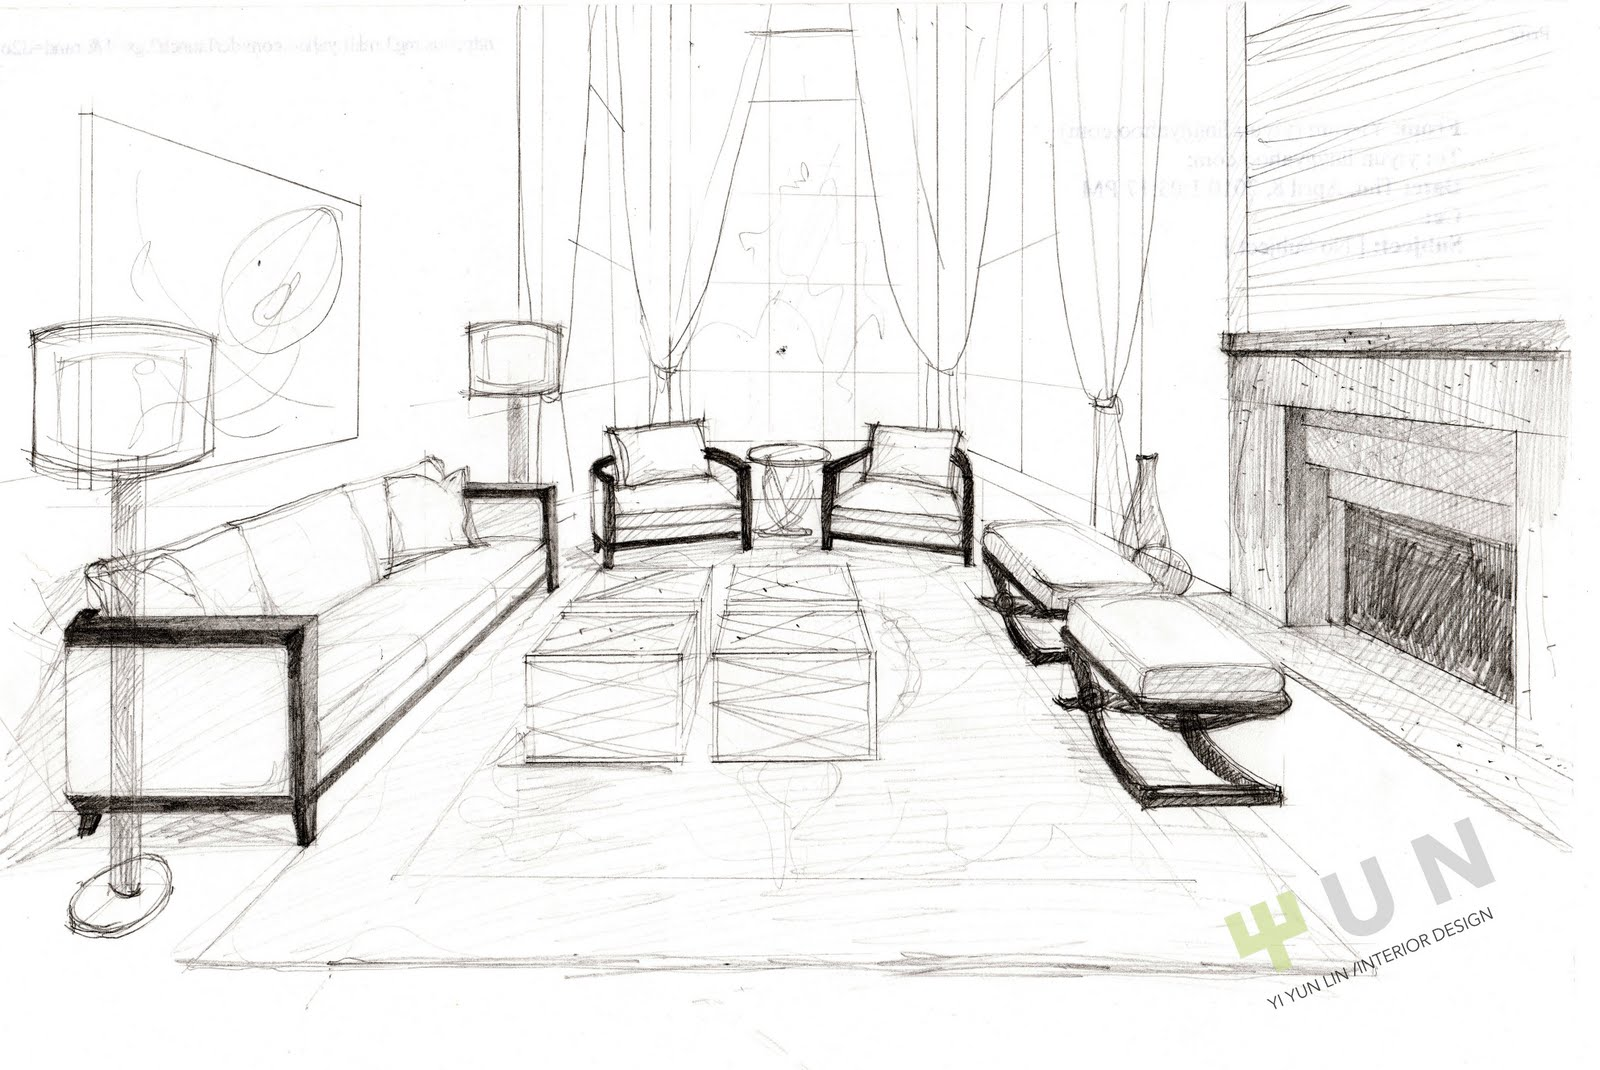 interior design sketches wallpress 1080p hd desktop